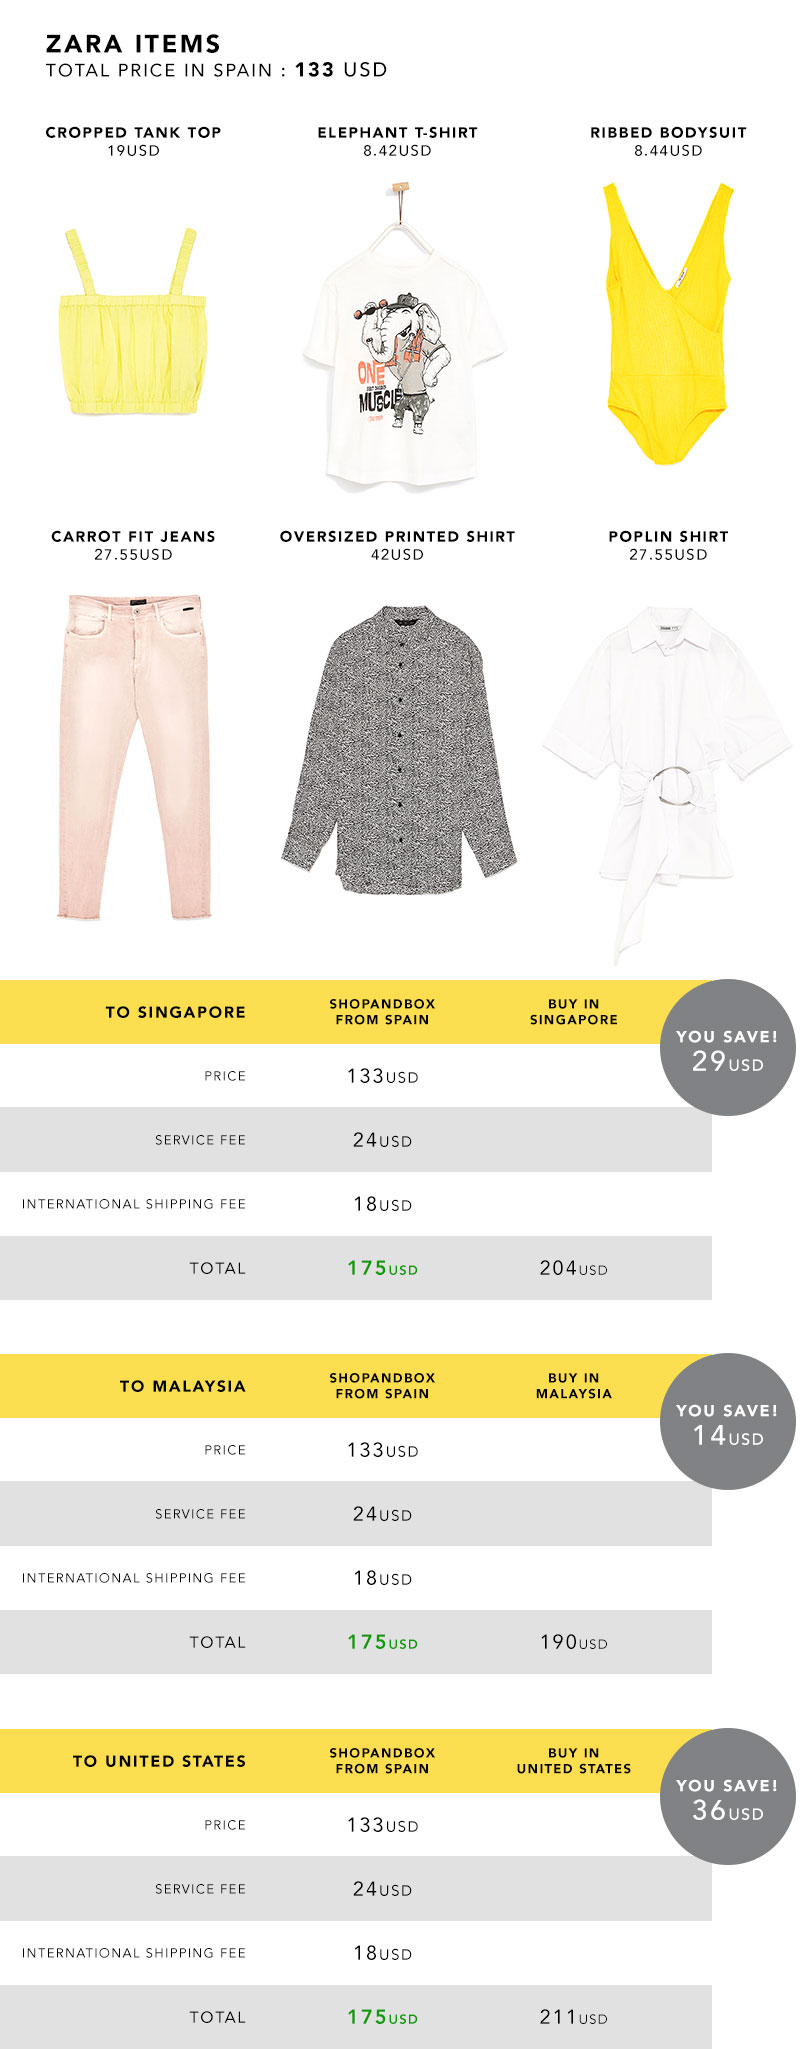 Price Comparison Zara Clothing